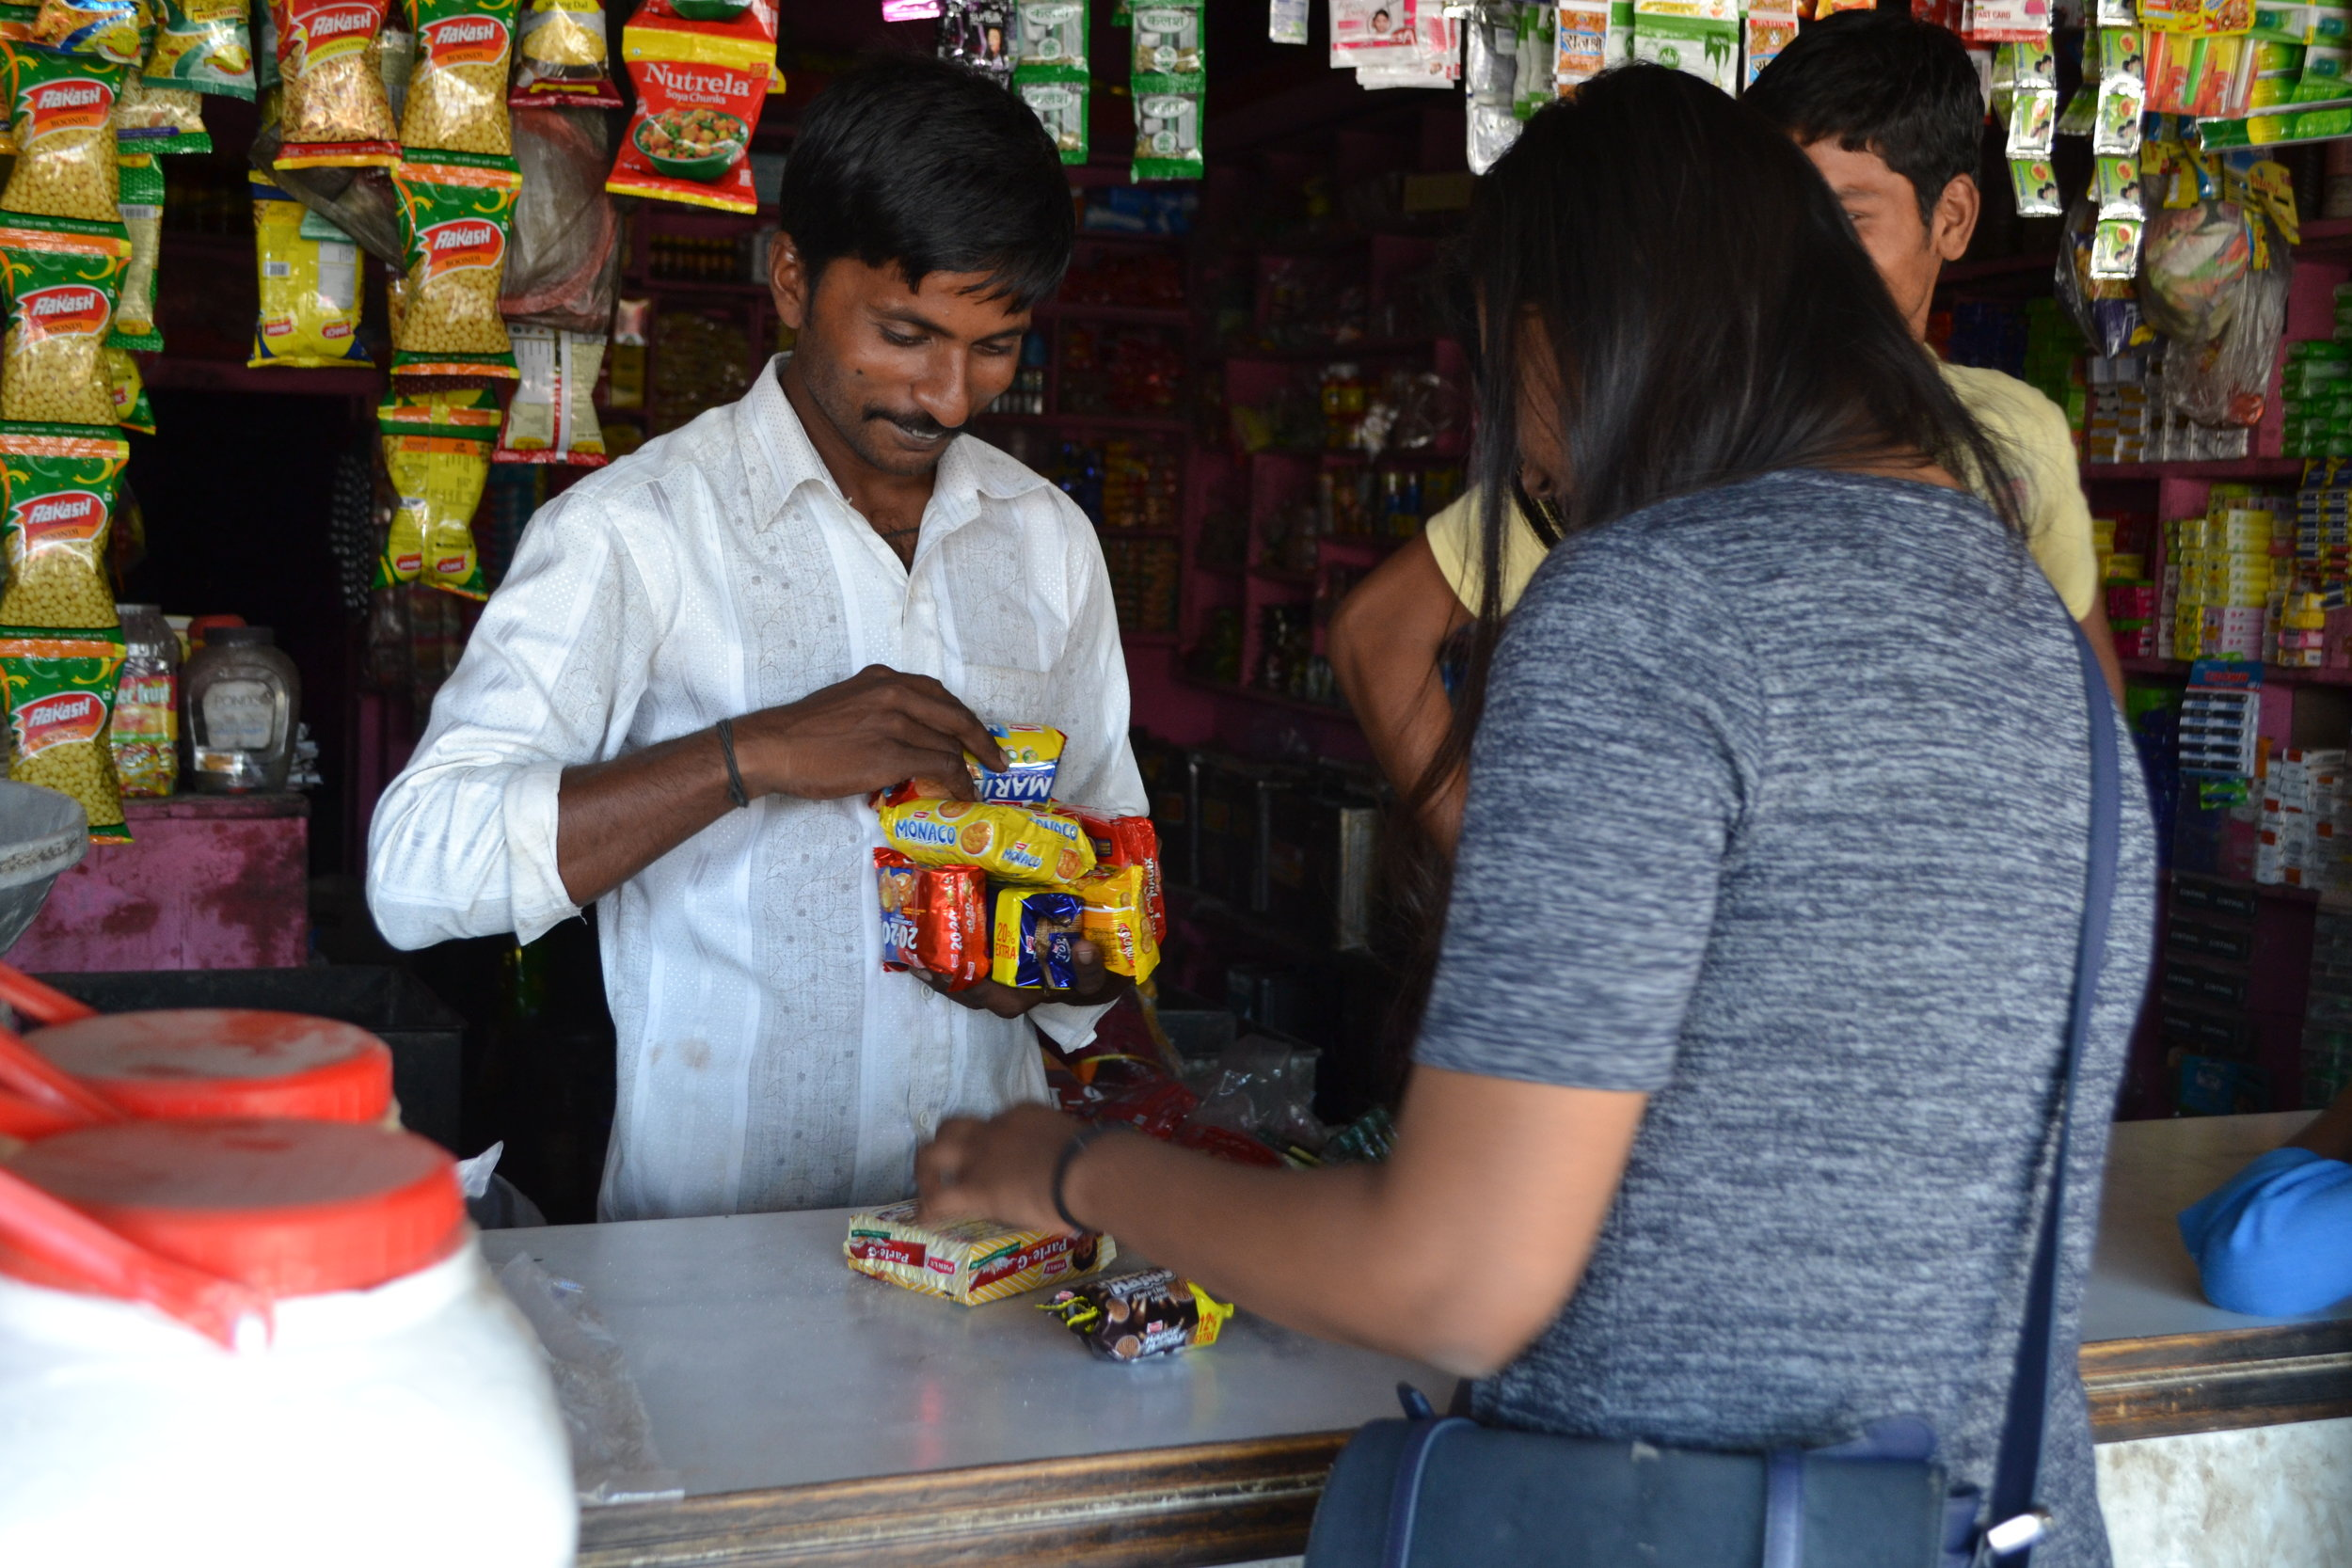 Shopping at the corner stall.